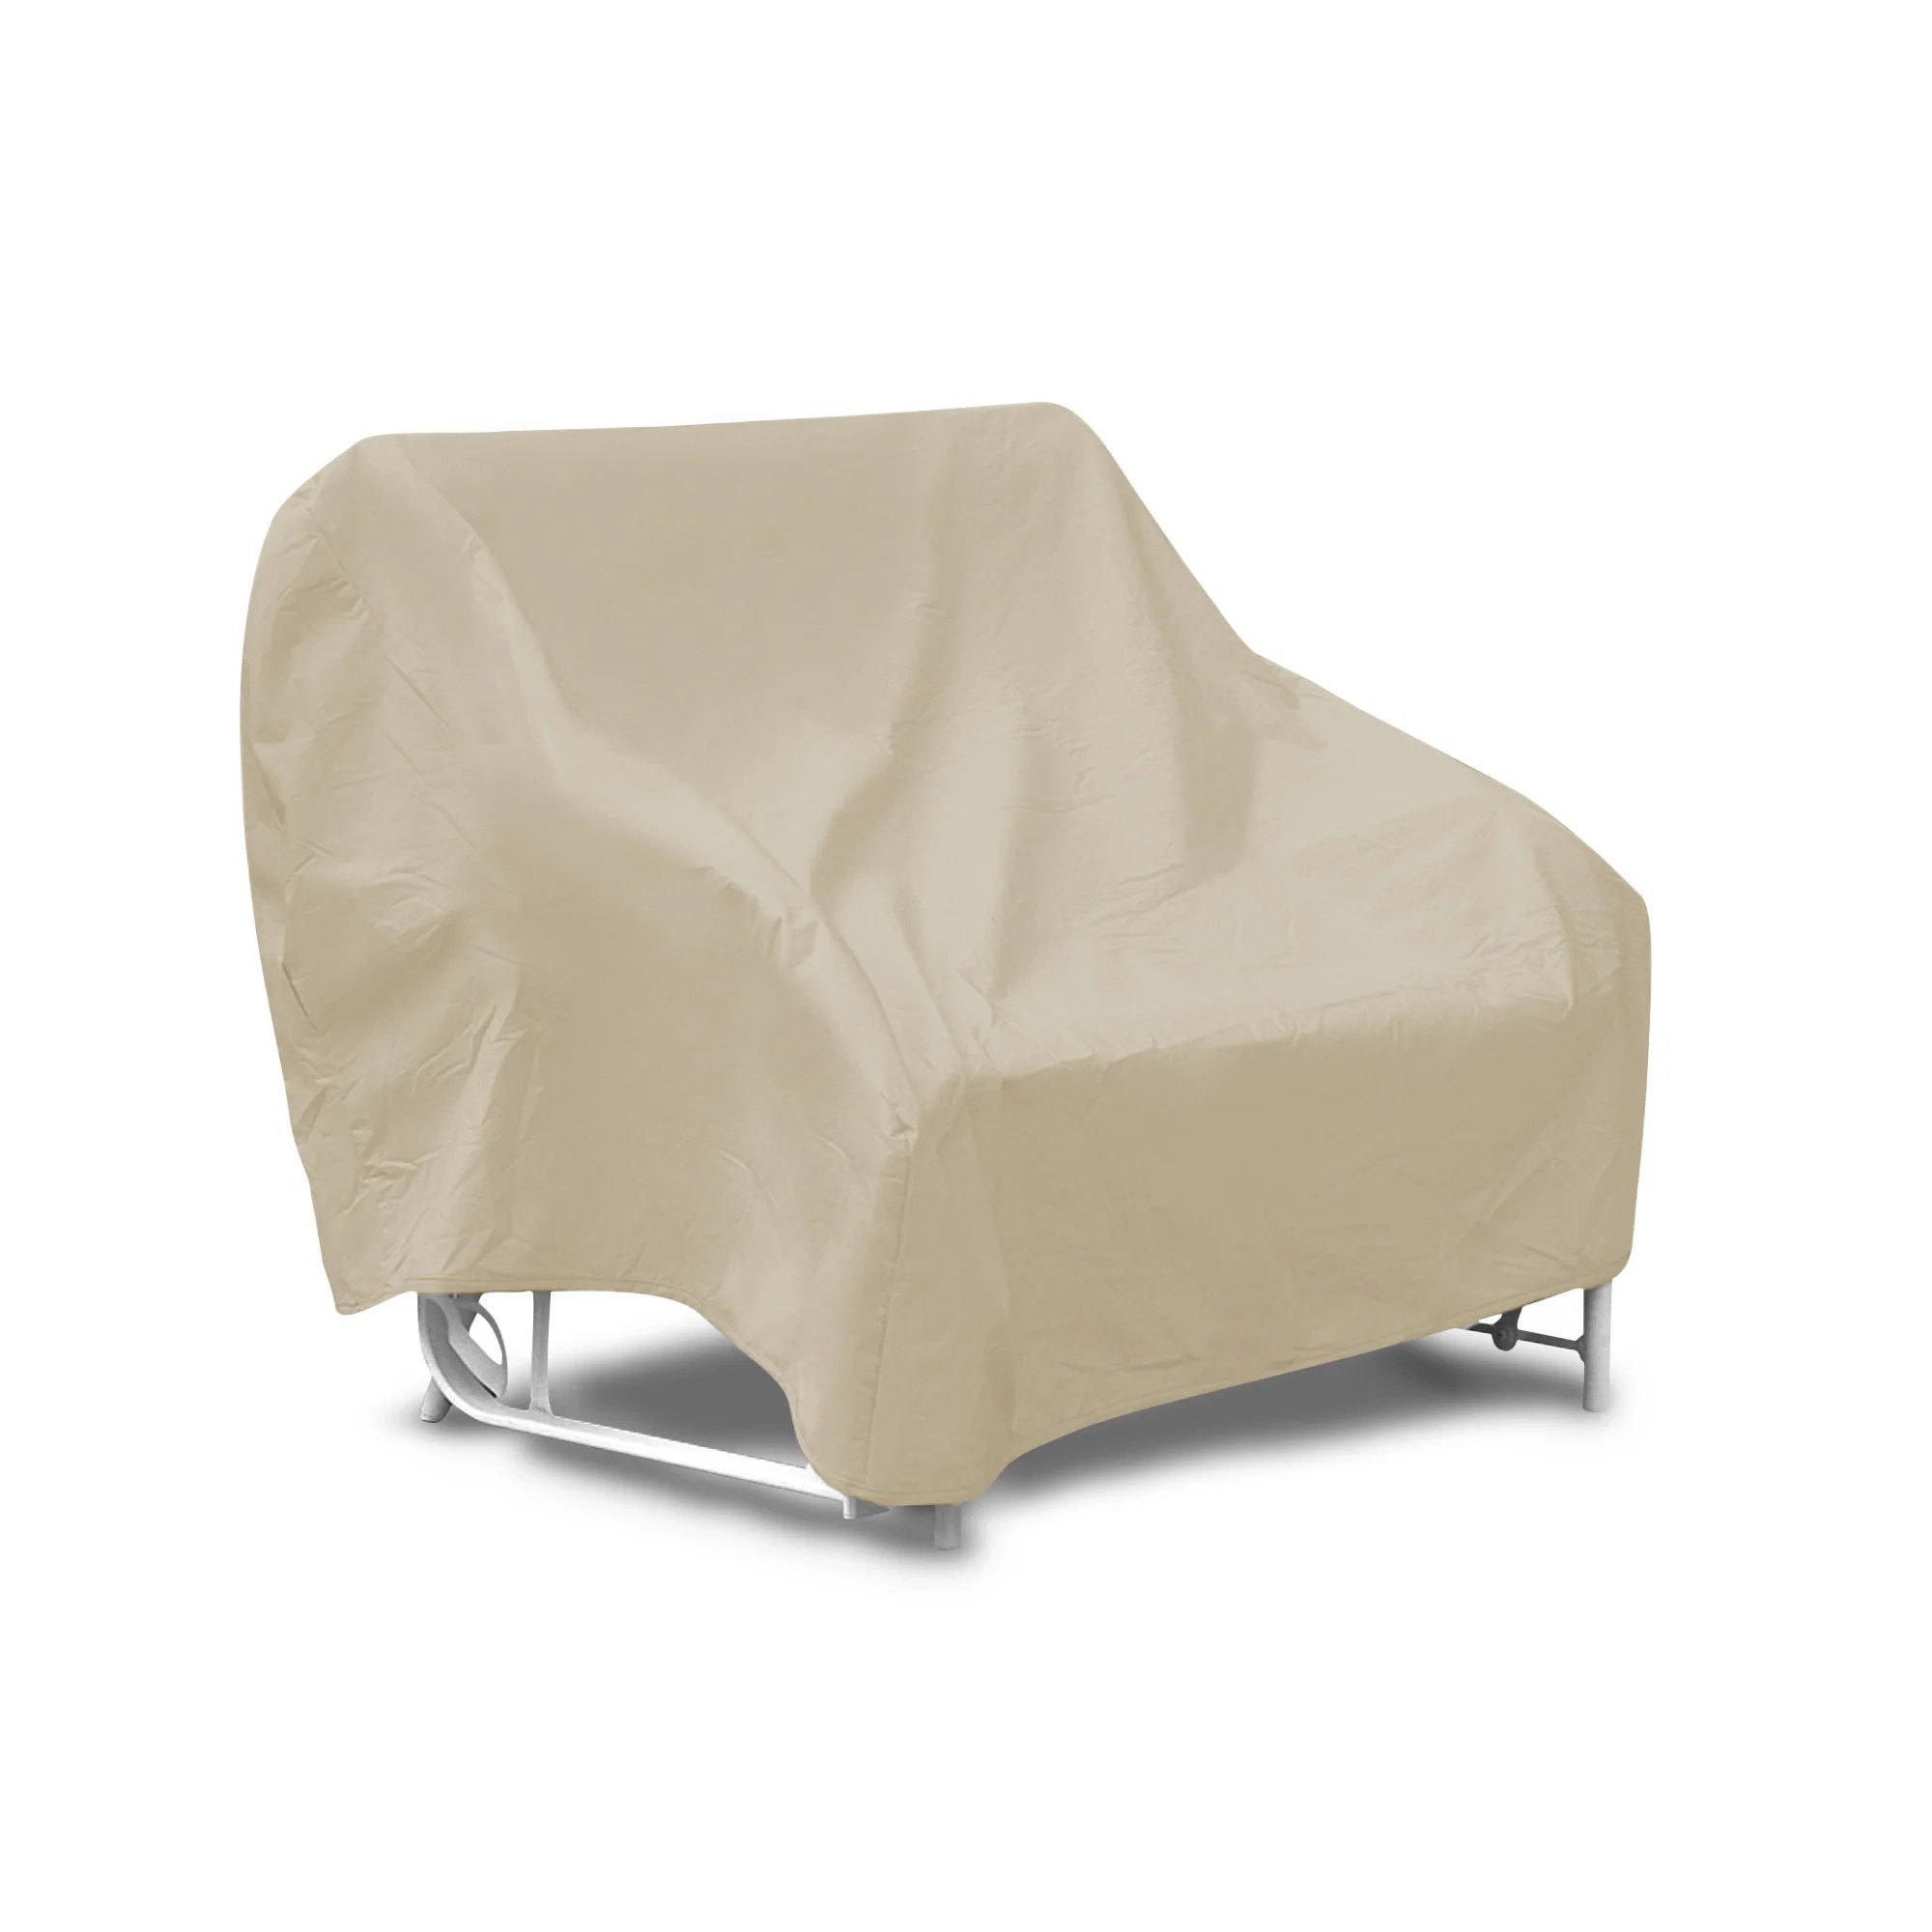 chair covers waterproof target living room chairs outdoor glider patio furniture two seat cover